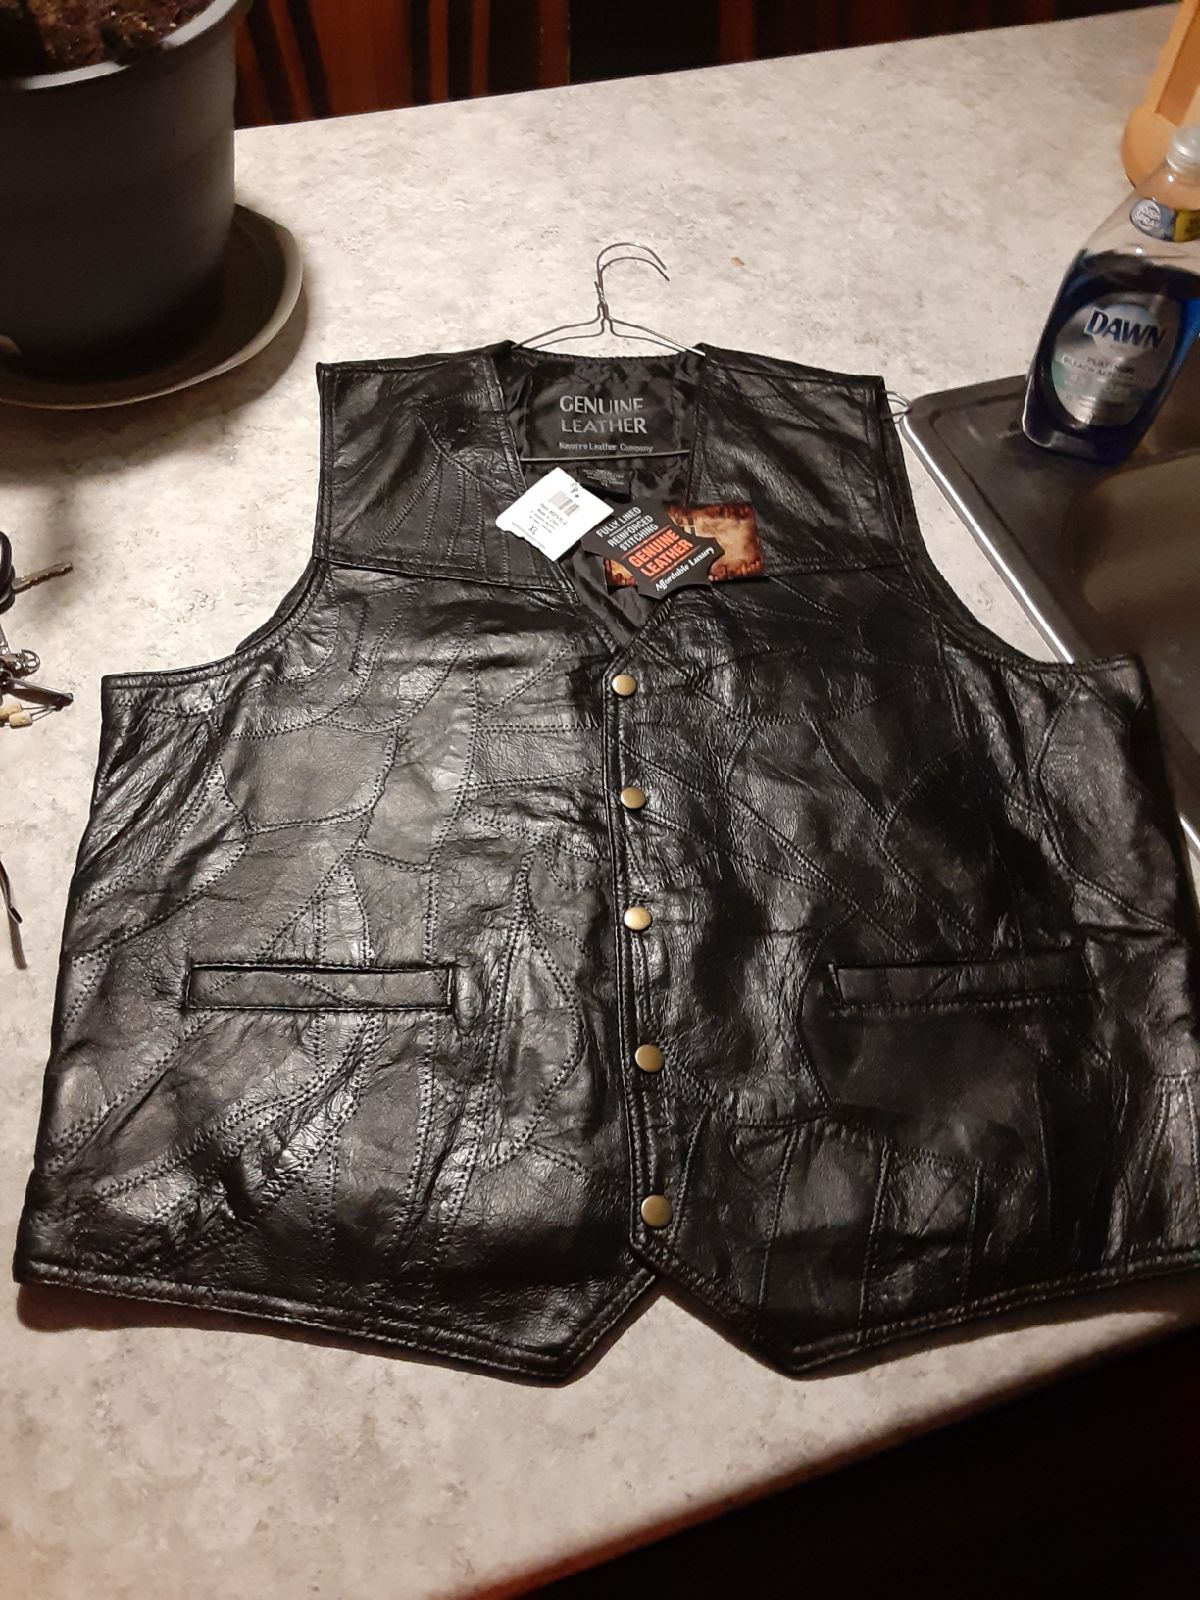 Genuine leather.. XL leather Vest.